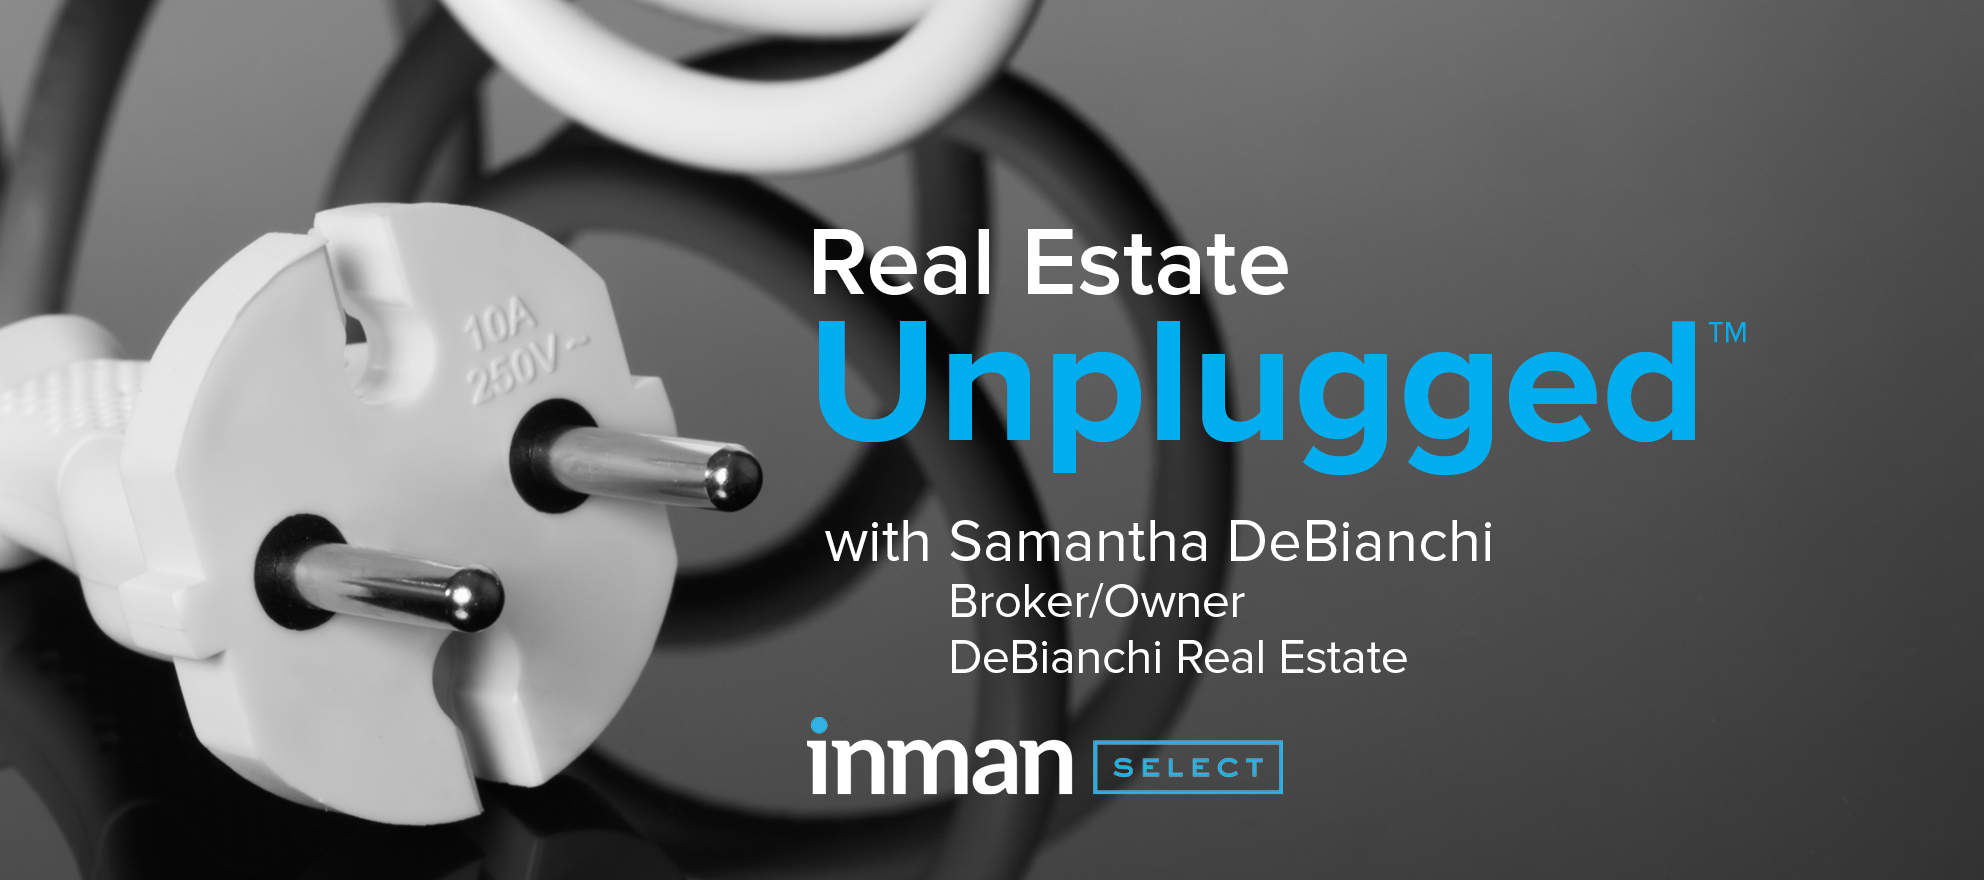 Samantha DeBianchi: 'We really need to focus back to the old-school way'